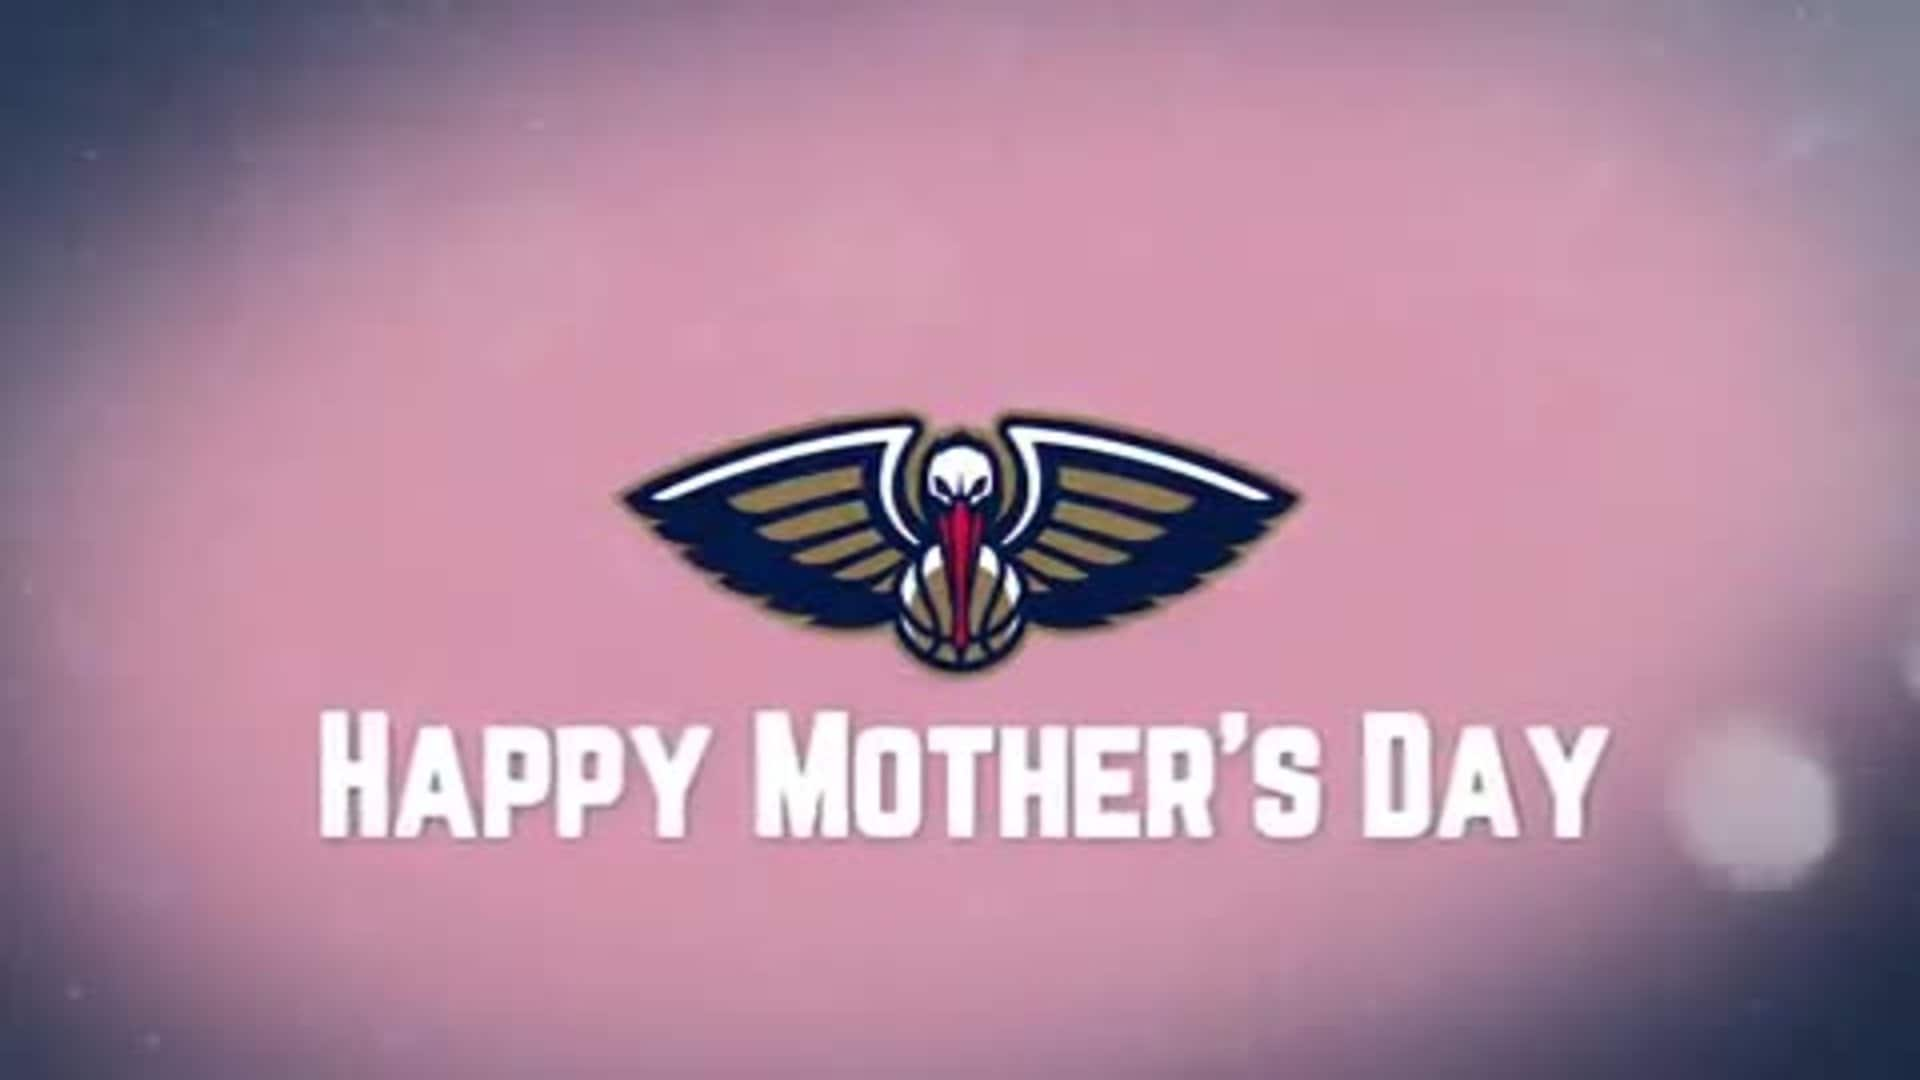 Happy Mother's Day from your Pelicans